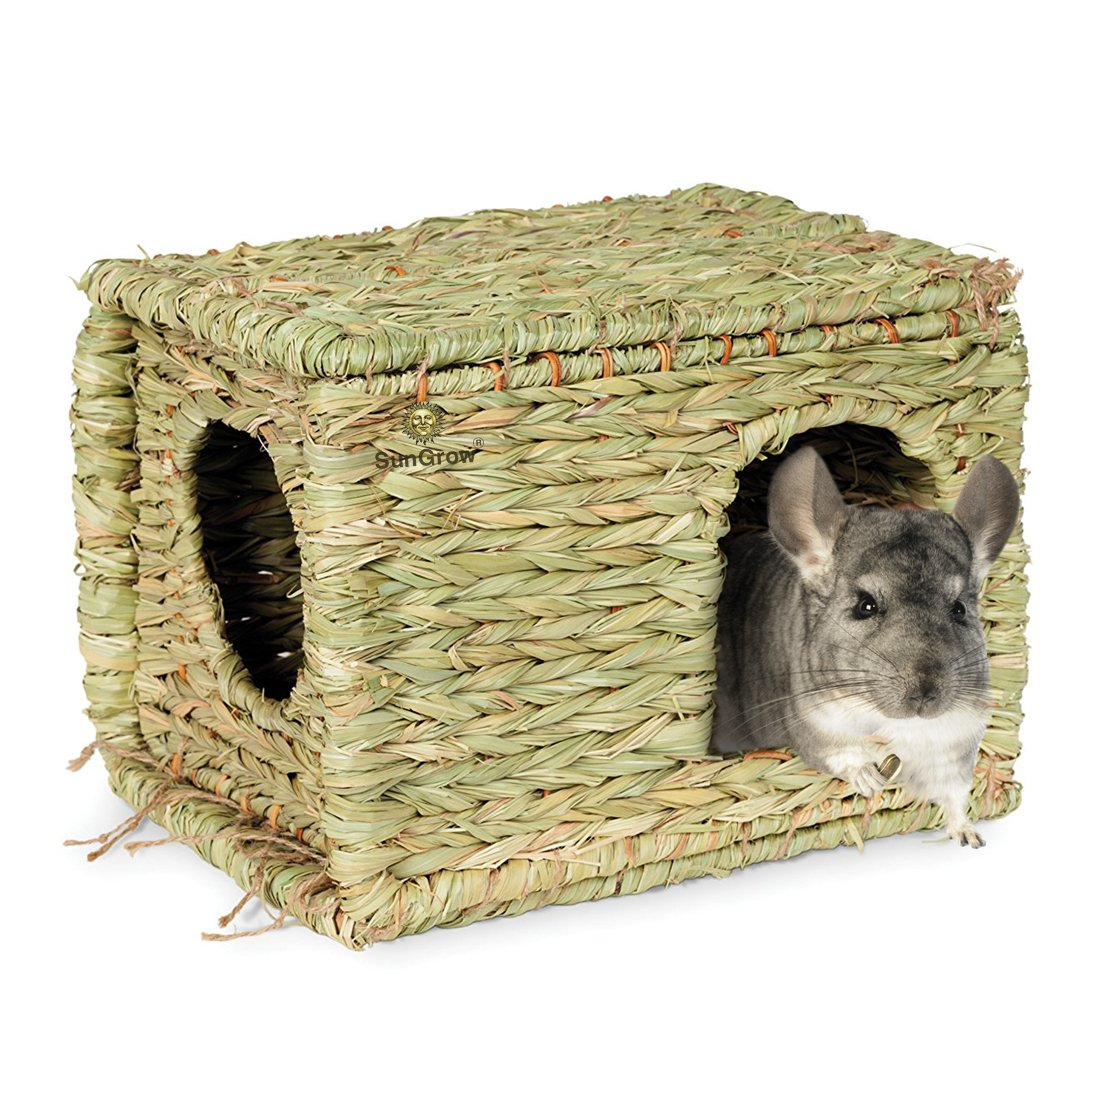 SunGrow Folding Woven Grass House for Rabbits, Guinea Pigs, Bunnies : Provides Comfort, Warmth & Security by Satisfying Natural Instincts: Multi-Utility, Edible, Non-Toxic, Chew Toy for Small Animals by SunGrow (Image #4)